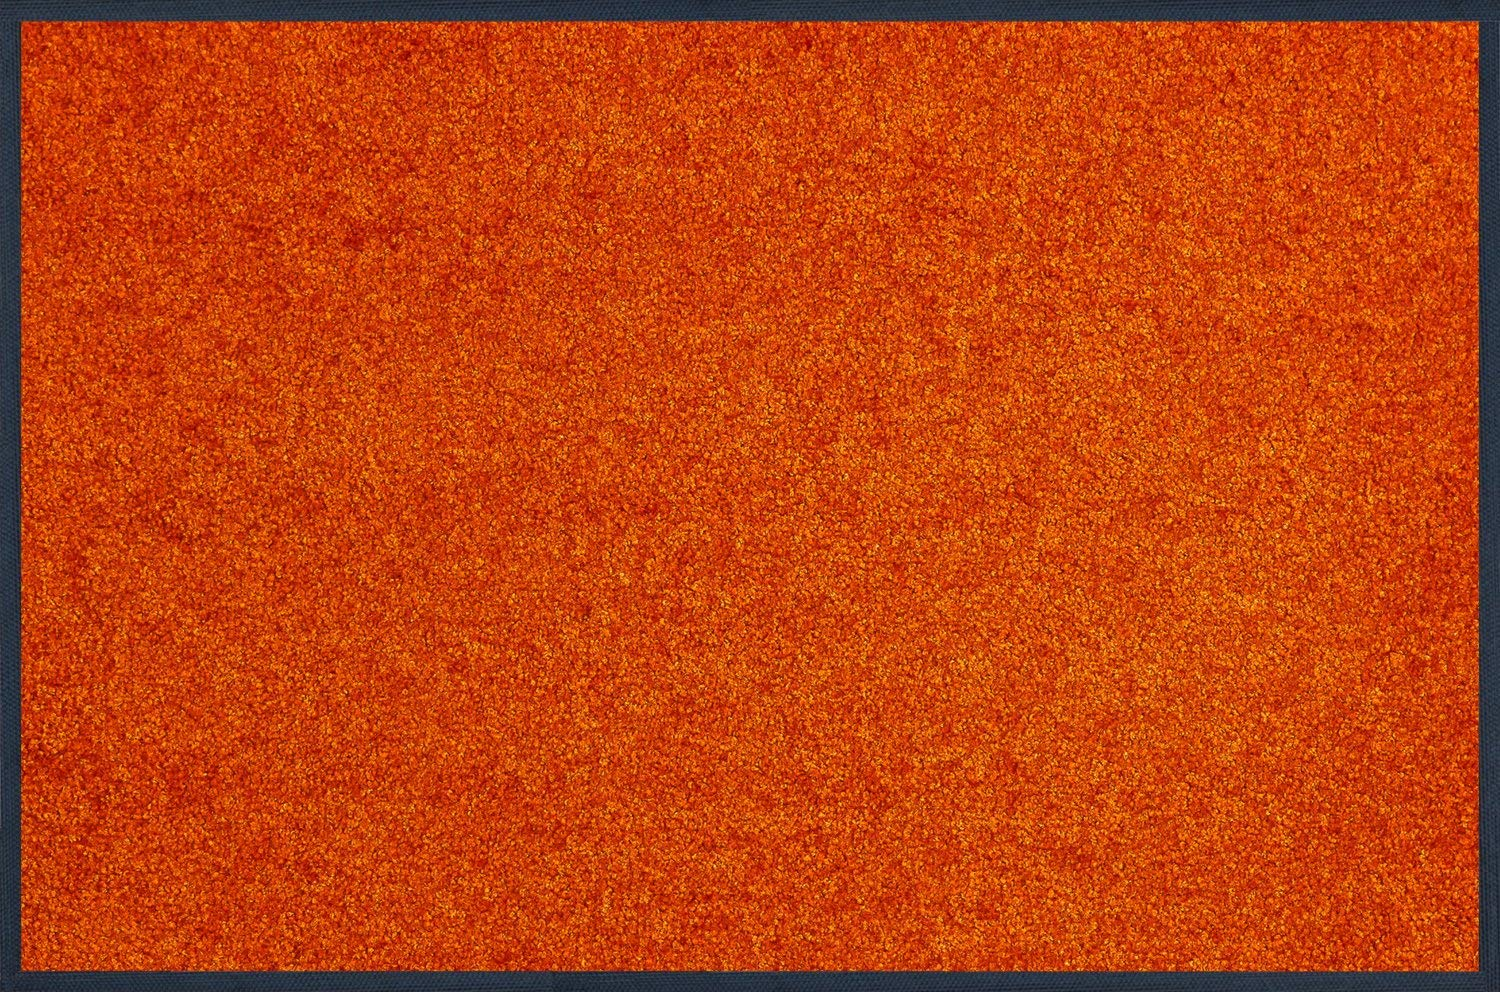 Wash + Dry 052609 Fußmatte Burnt Orange 60 60 60 x 180 cm B00BQUAINM Fumatten 6f8820